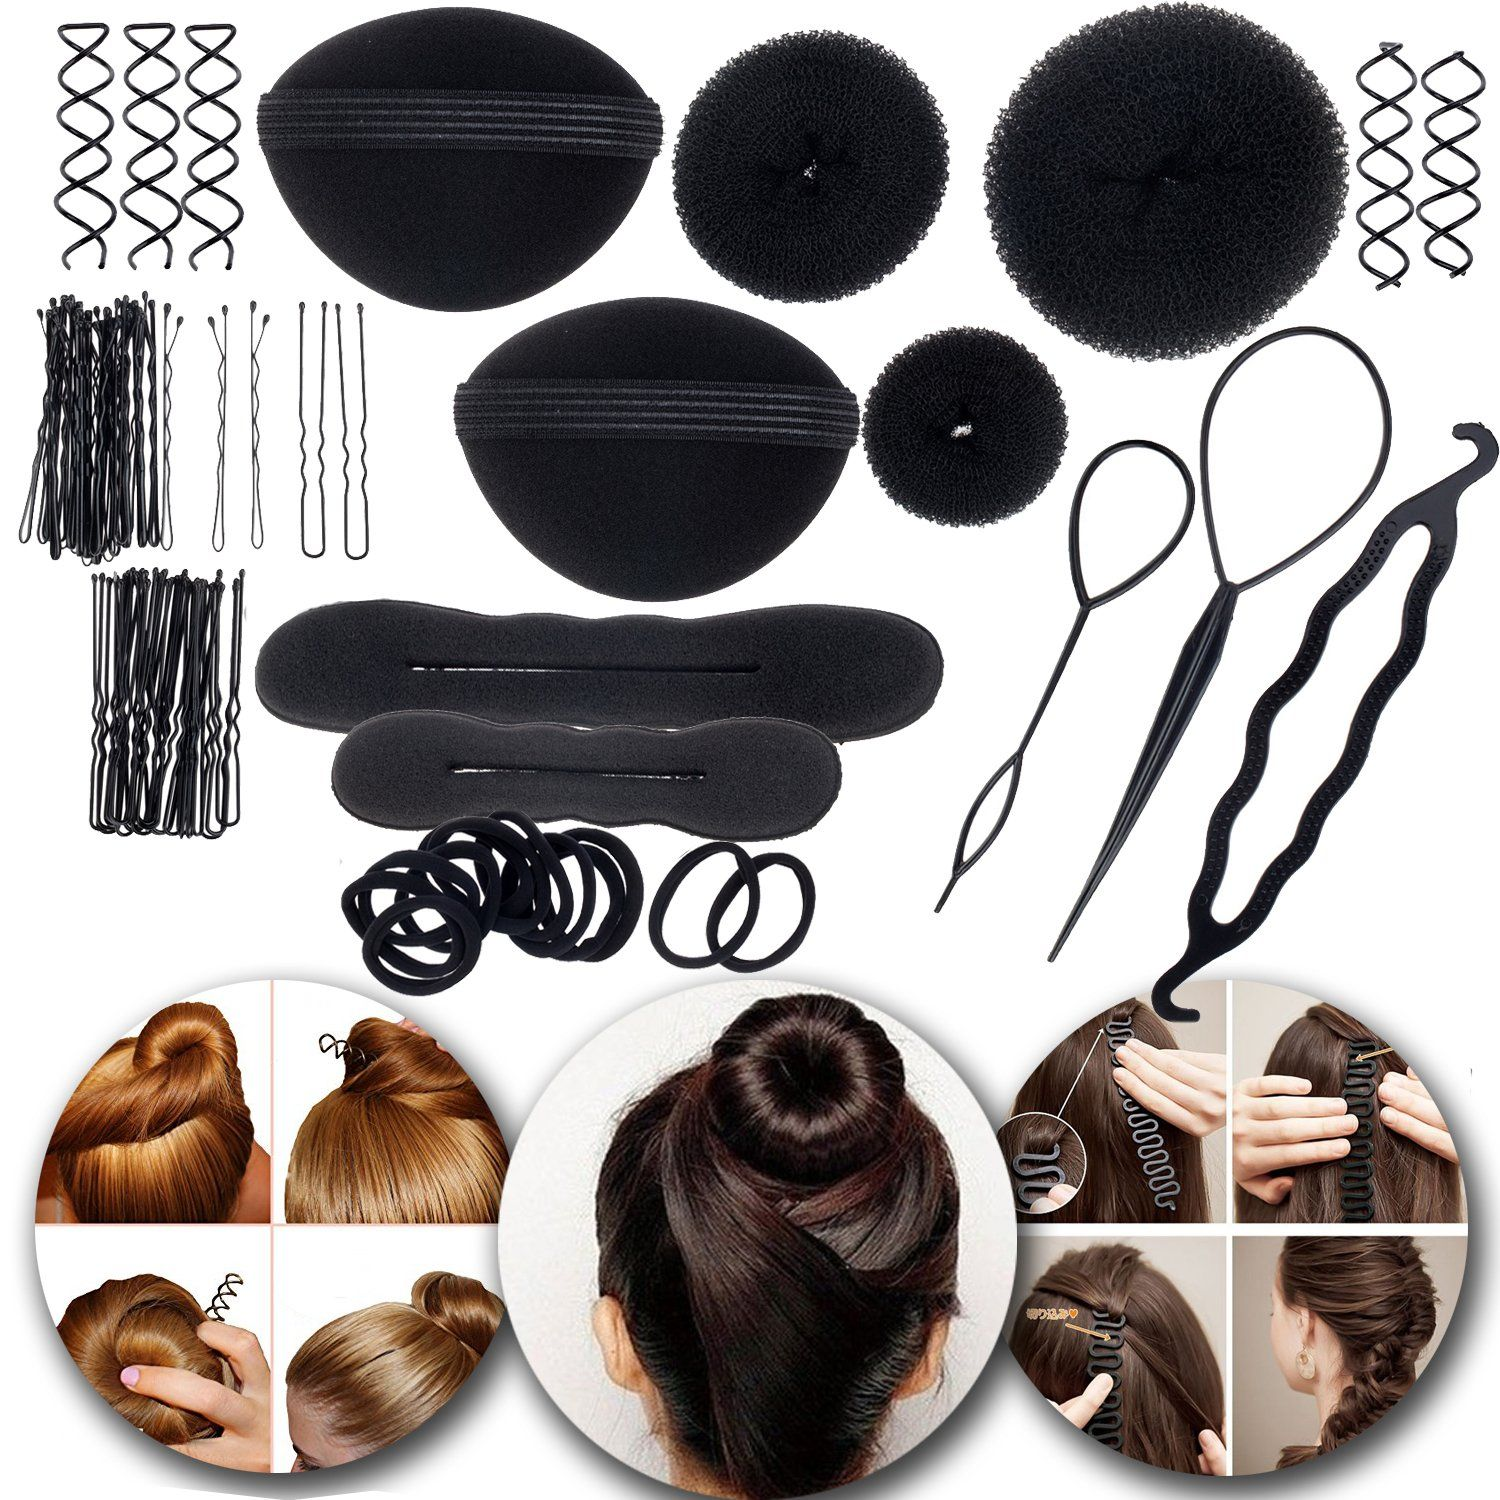 Hair Styling Hairstyling Set Kit Of Bun Makers Formers Doughnuts Twisters Donuts Twisting Tools Volume Bases Brai Hair Accessories Ponytail Holders Hair Band